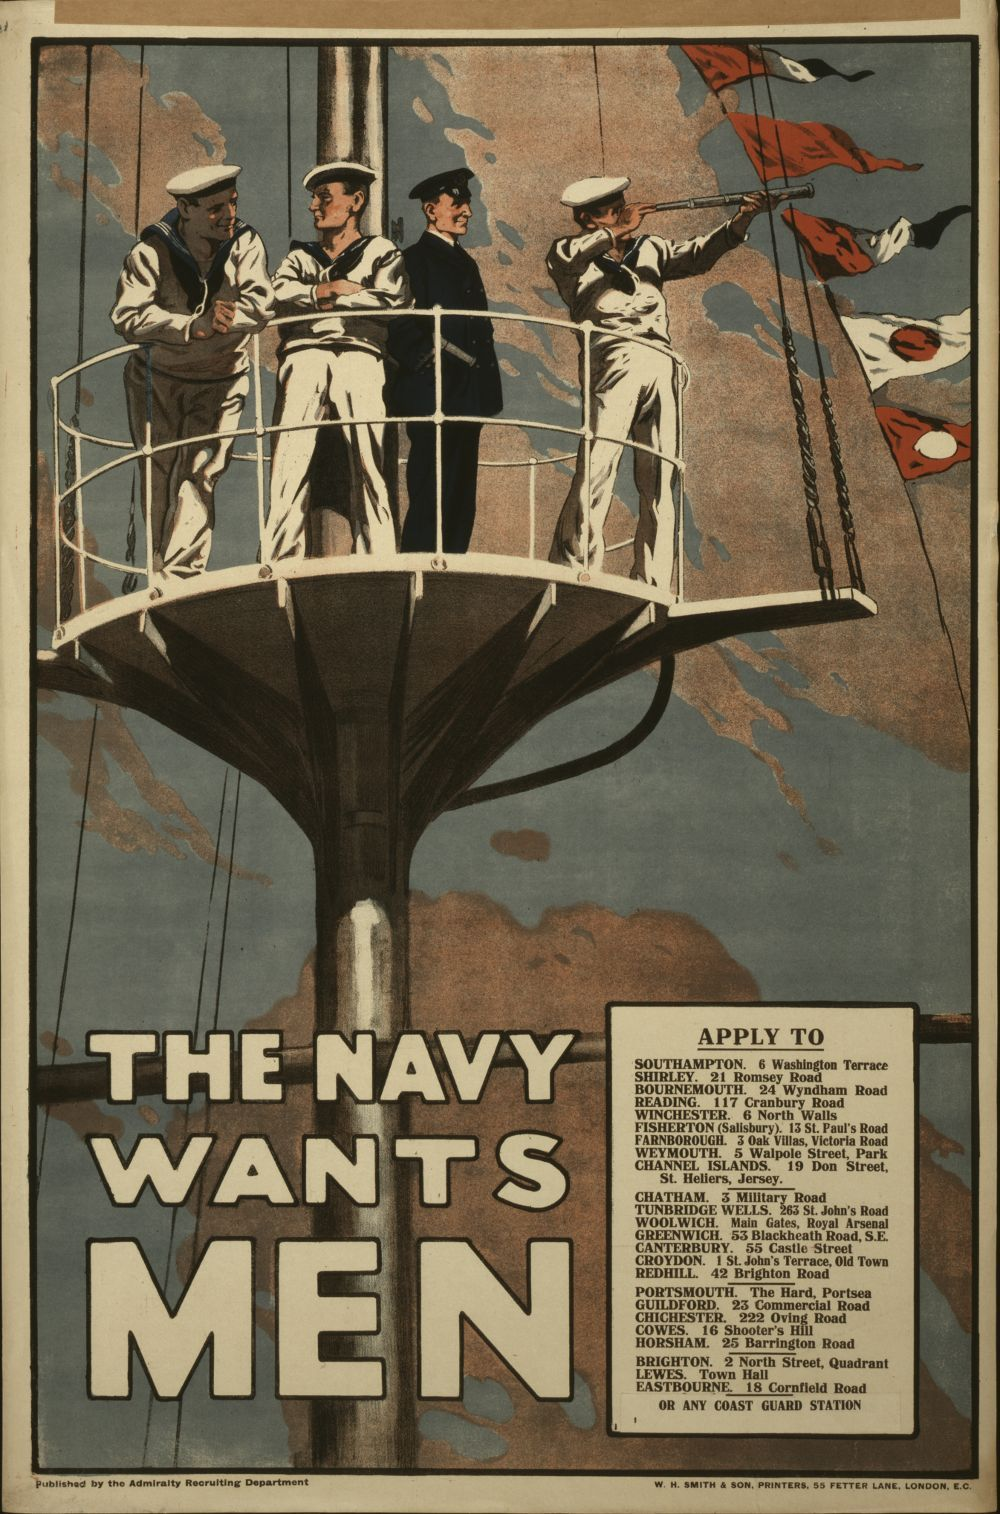 Pin By The Navy Campaign On Navy Things Military Poster Royal Navy Retro Poster